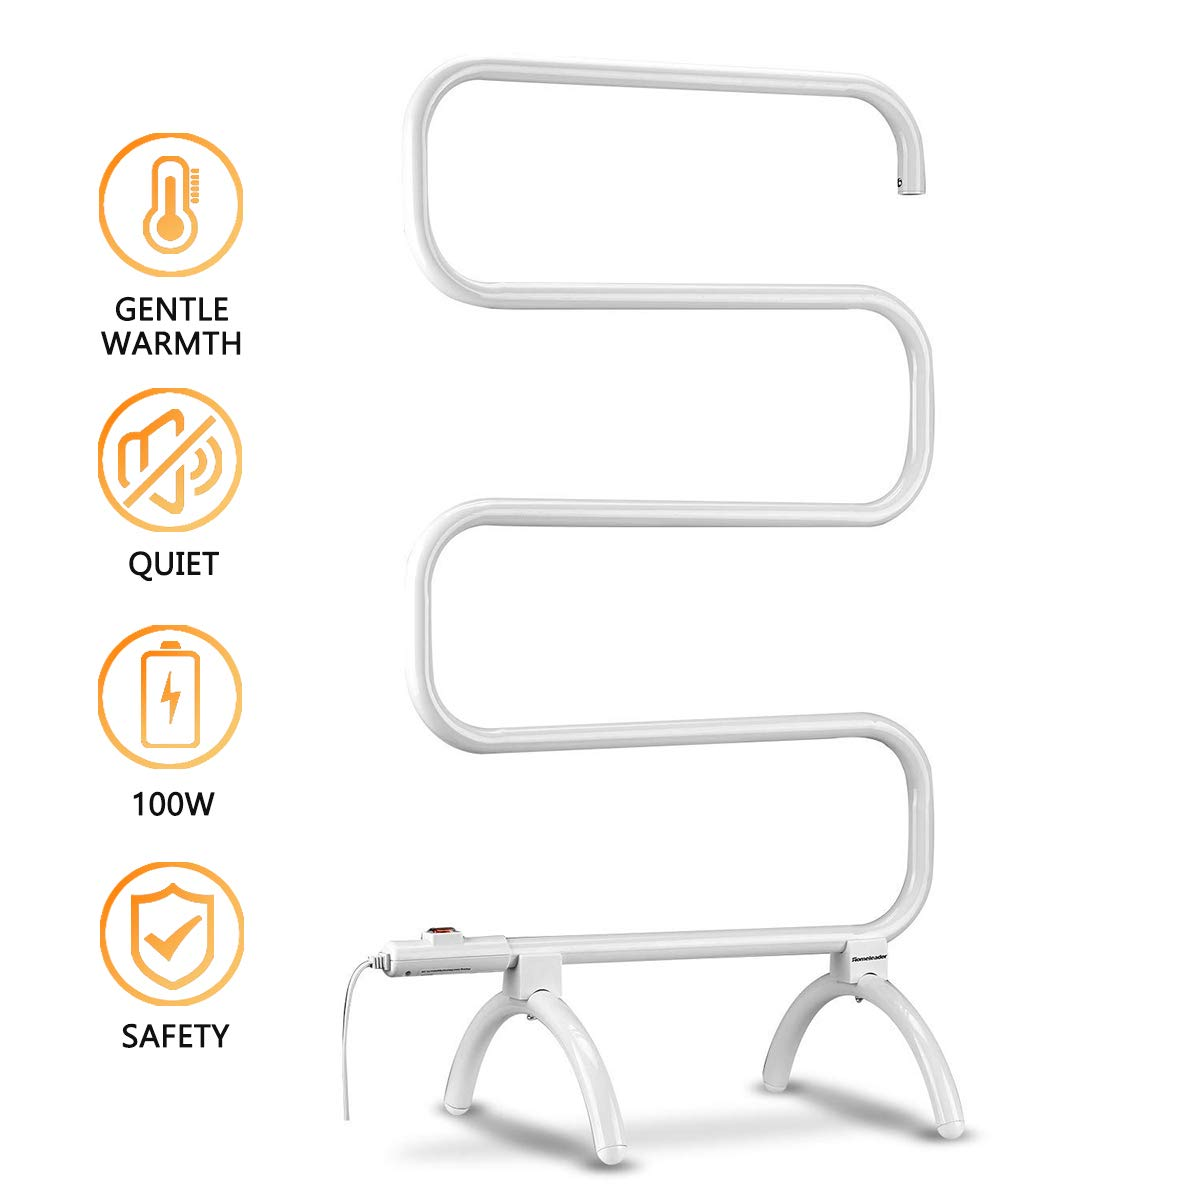 hl Hot Towel Warmer for Bath and Heated Drying Rack, Free Standing and Wall Mounted Optional, 100 Watt Heated Towel Rack, White